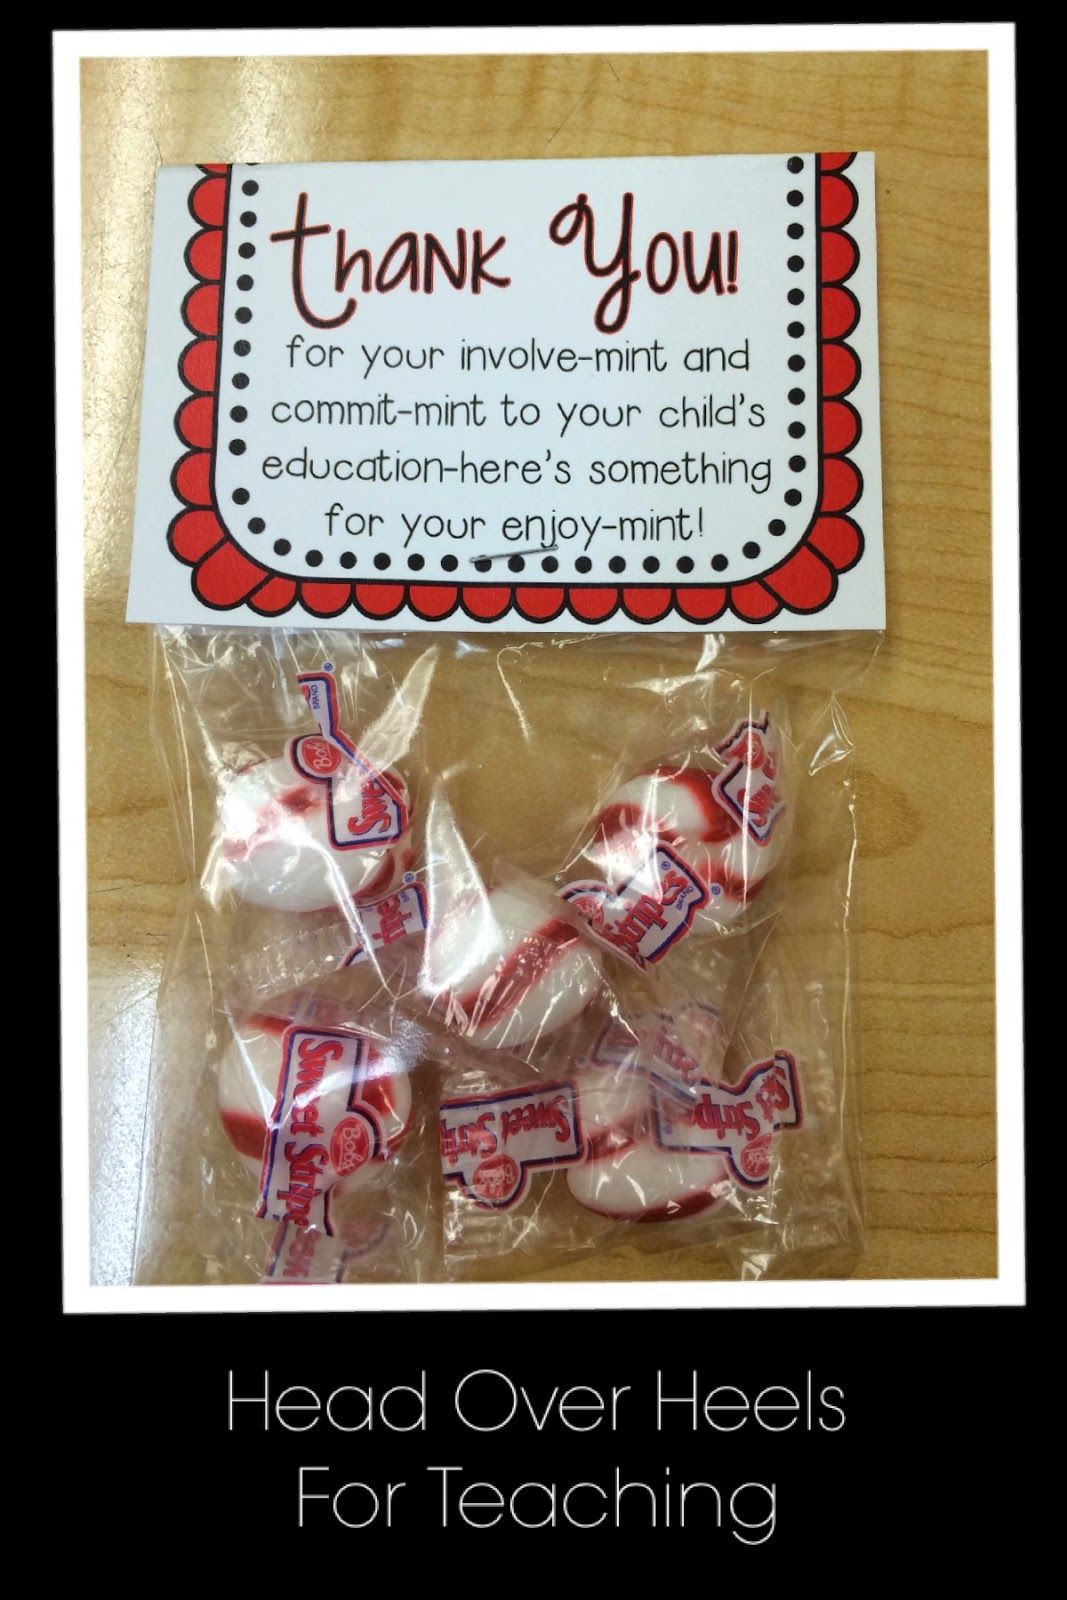 Thank You Gift Ideas For Parents  Open House give parents a thank you note for their involve